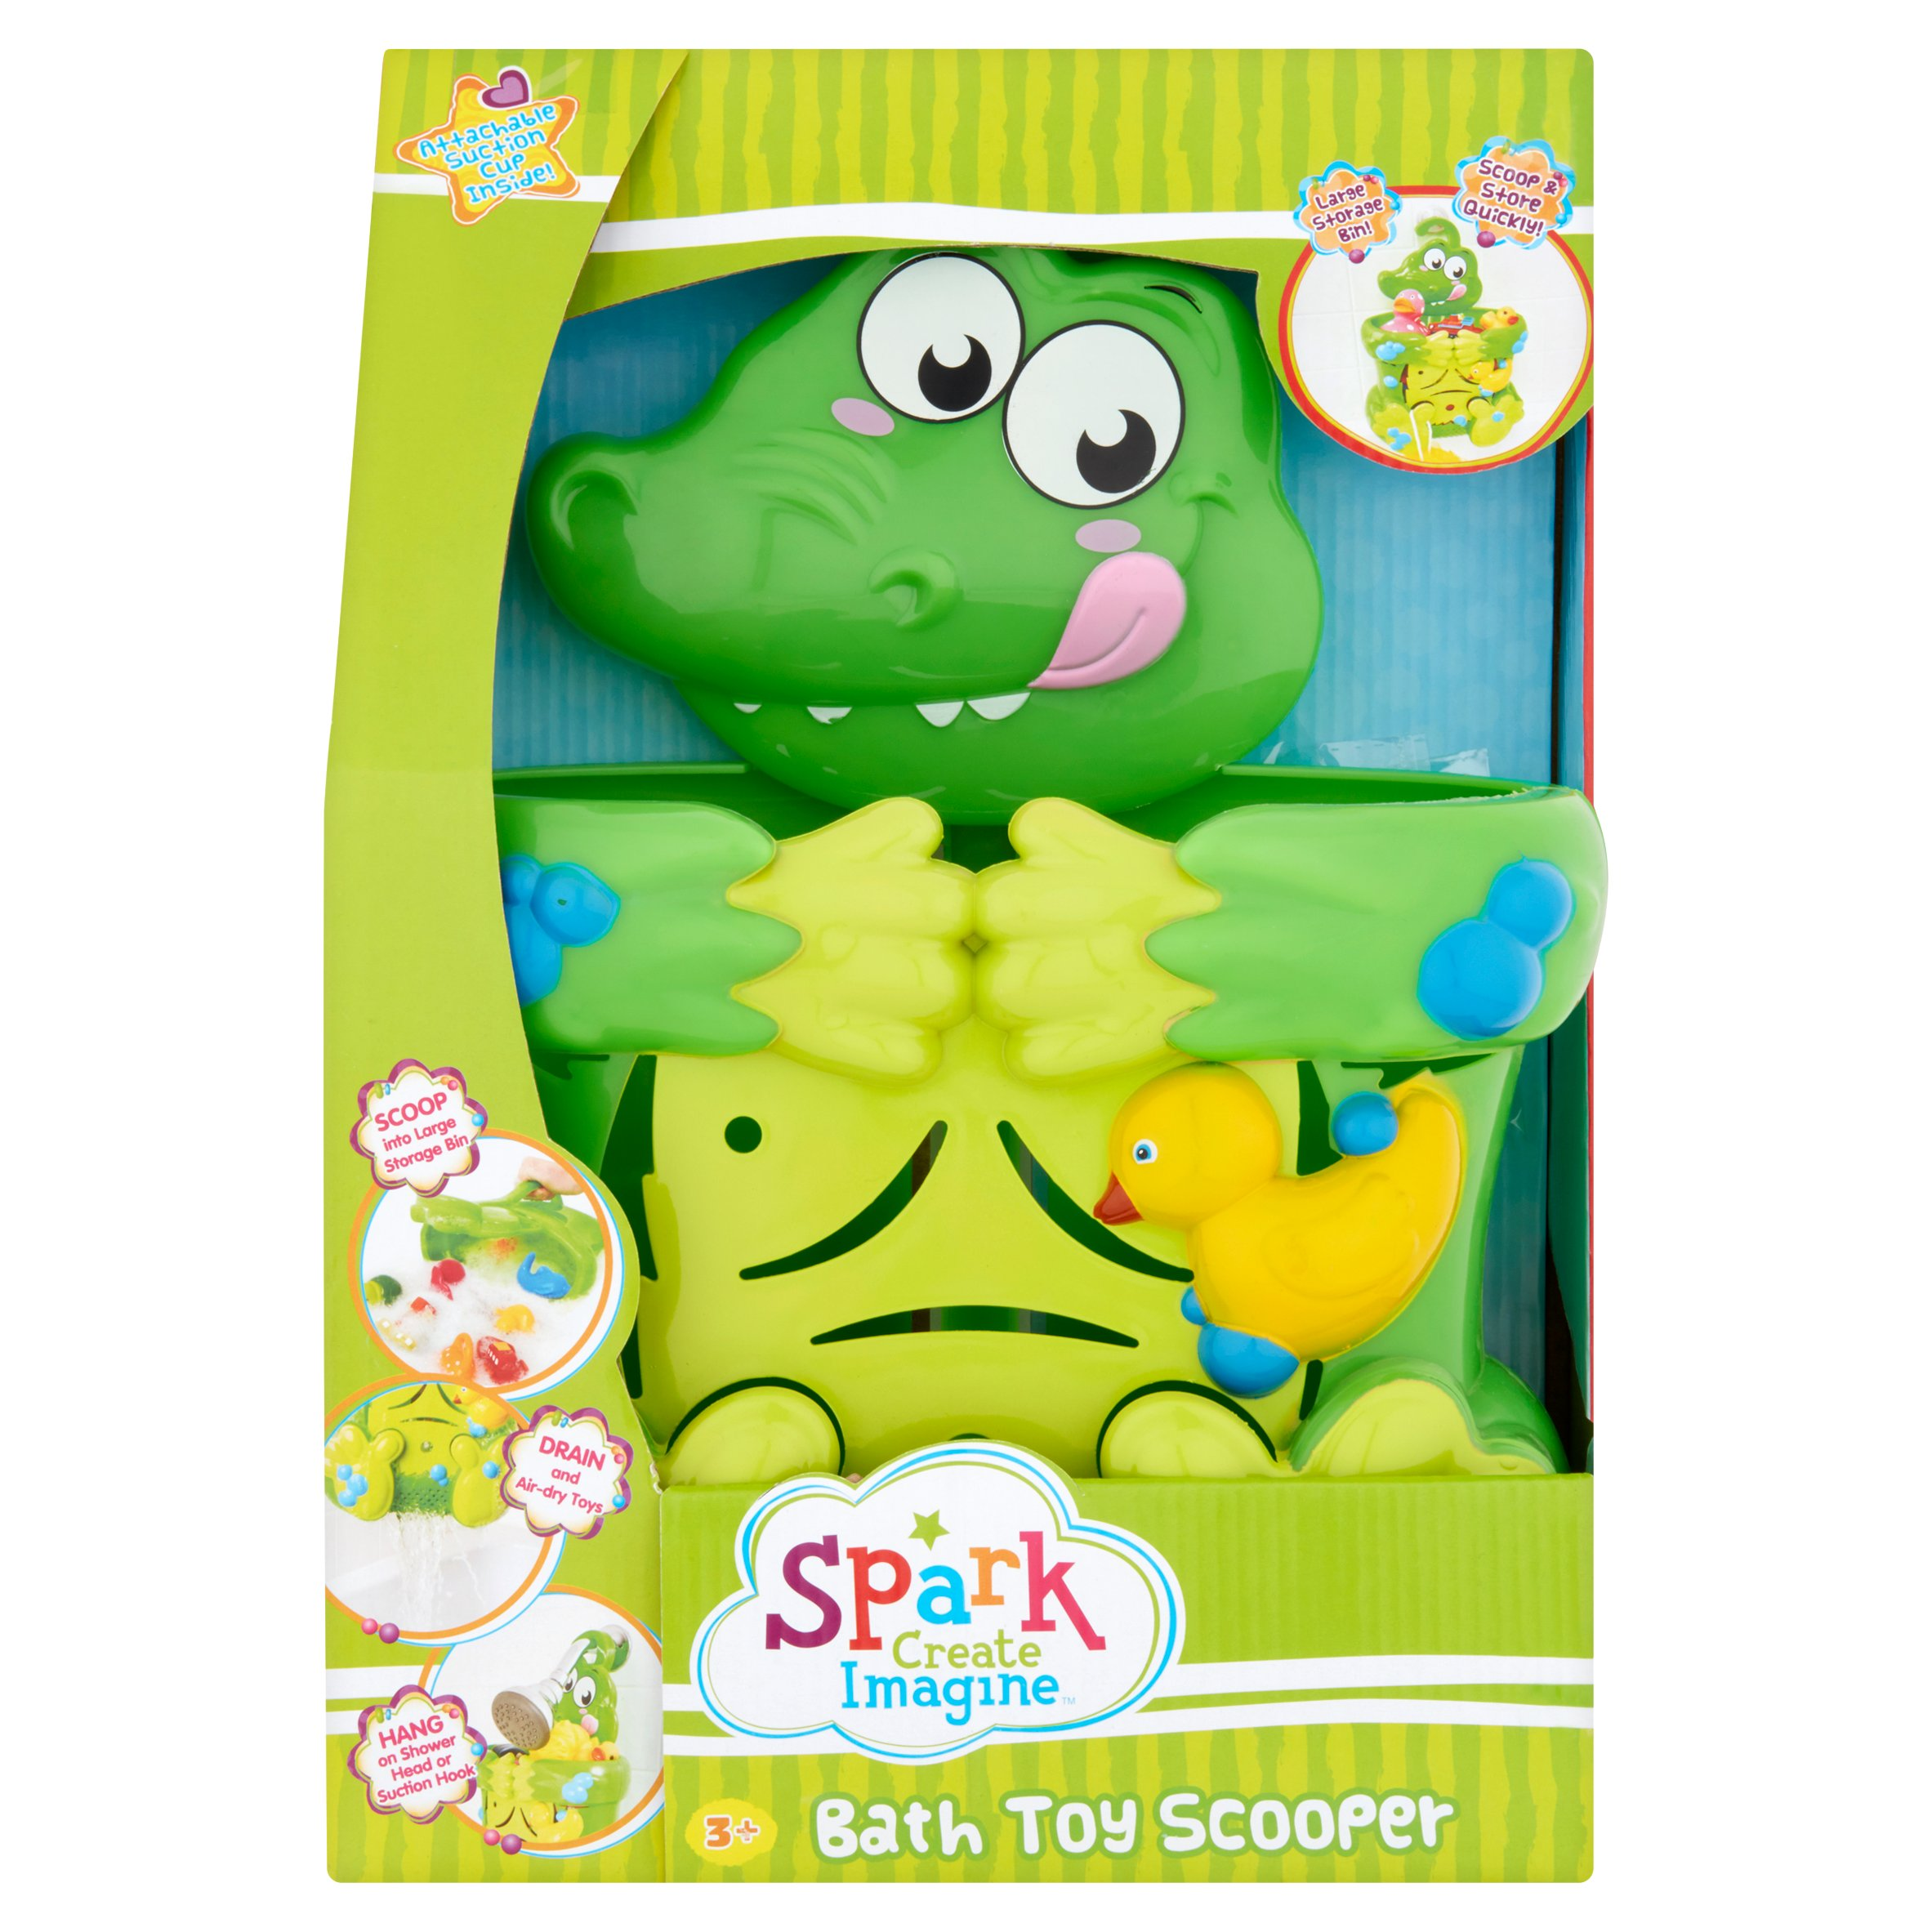 Spark Create Imagine Bath Toy Scooper, Green Alligator